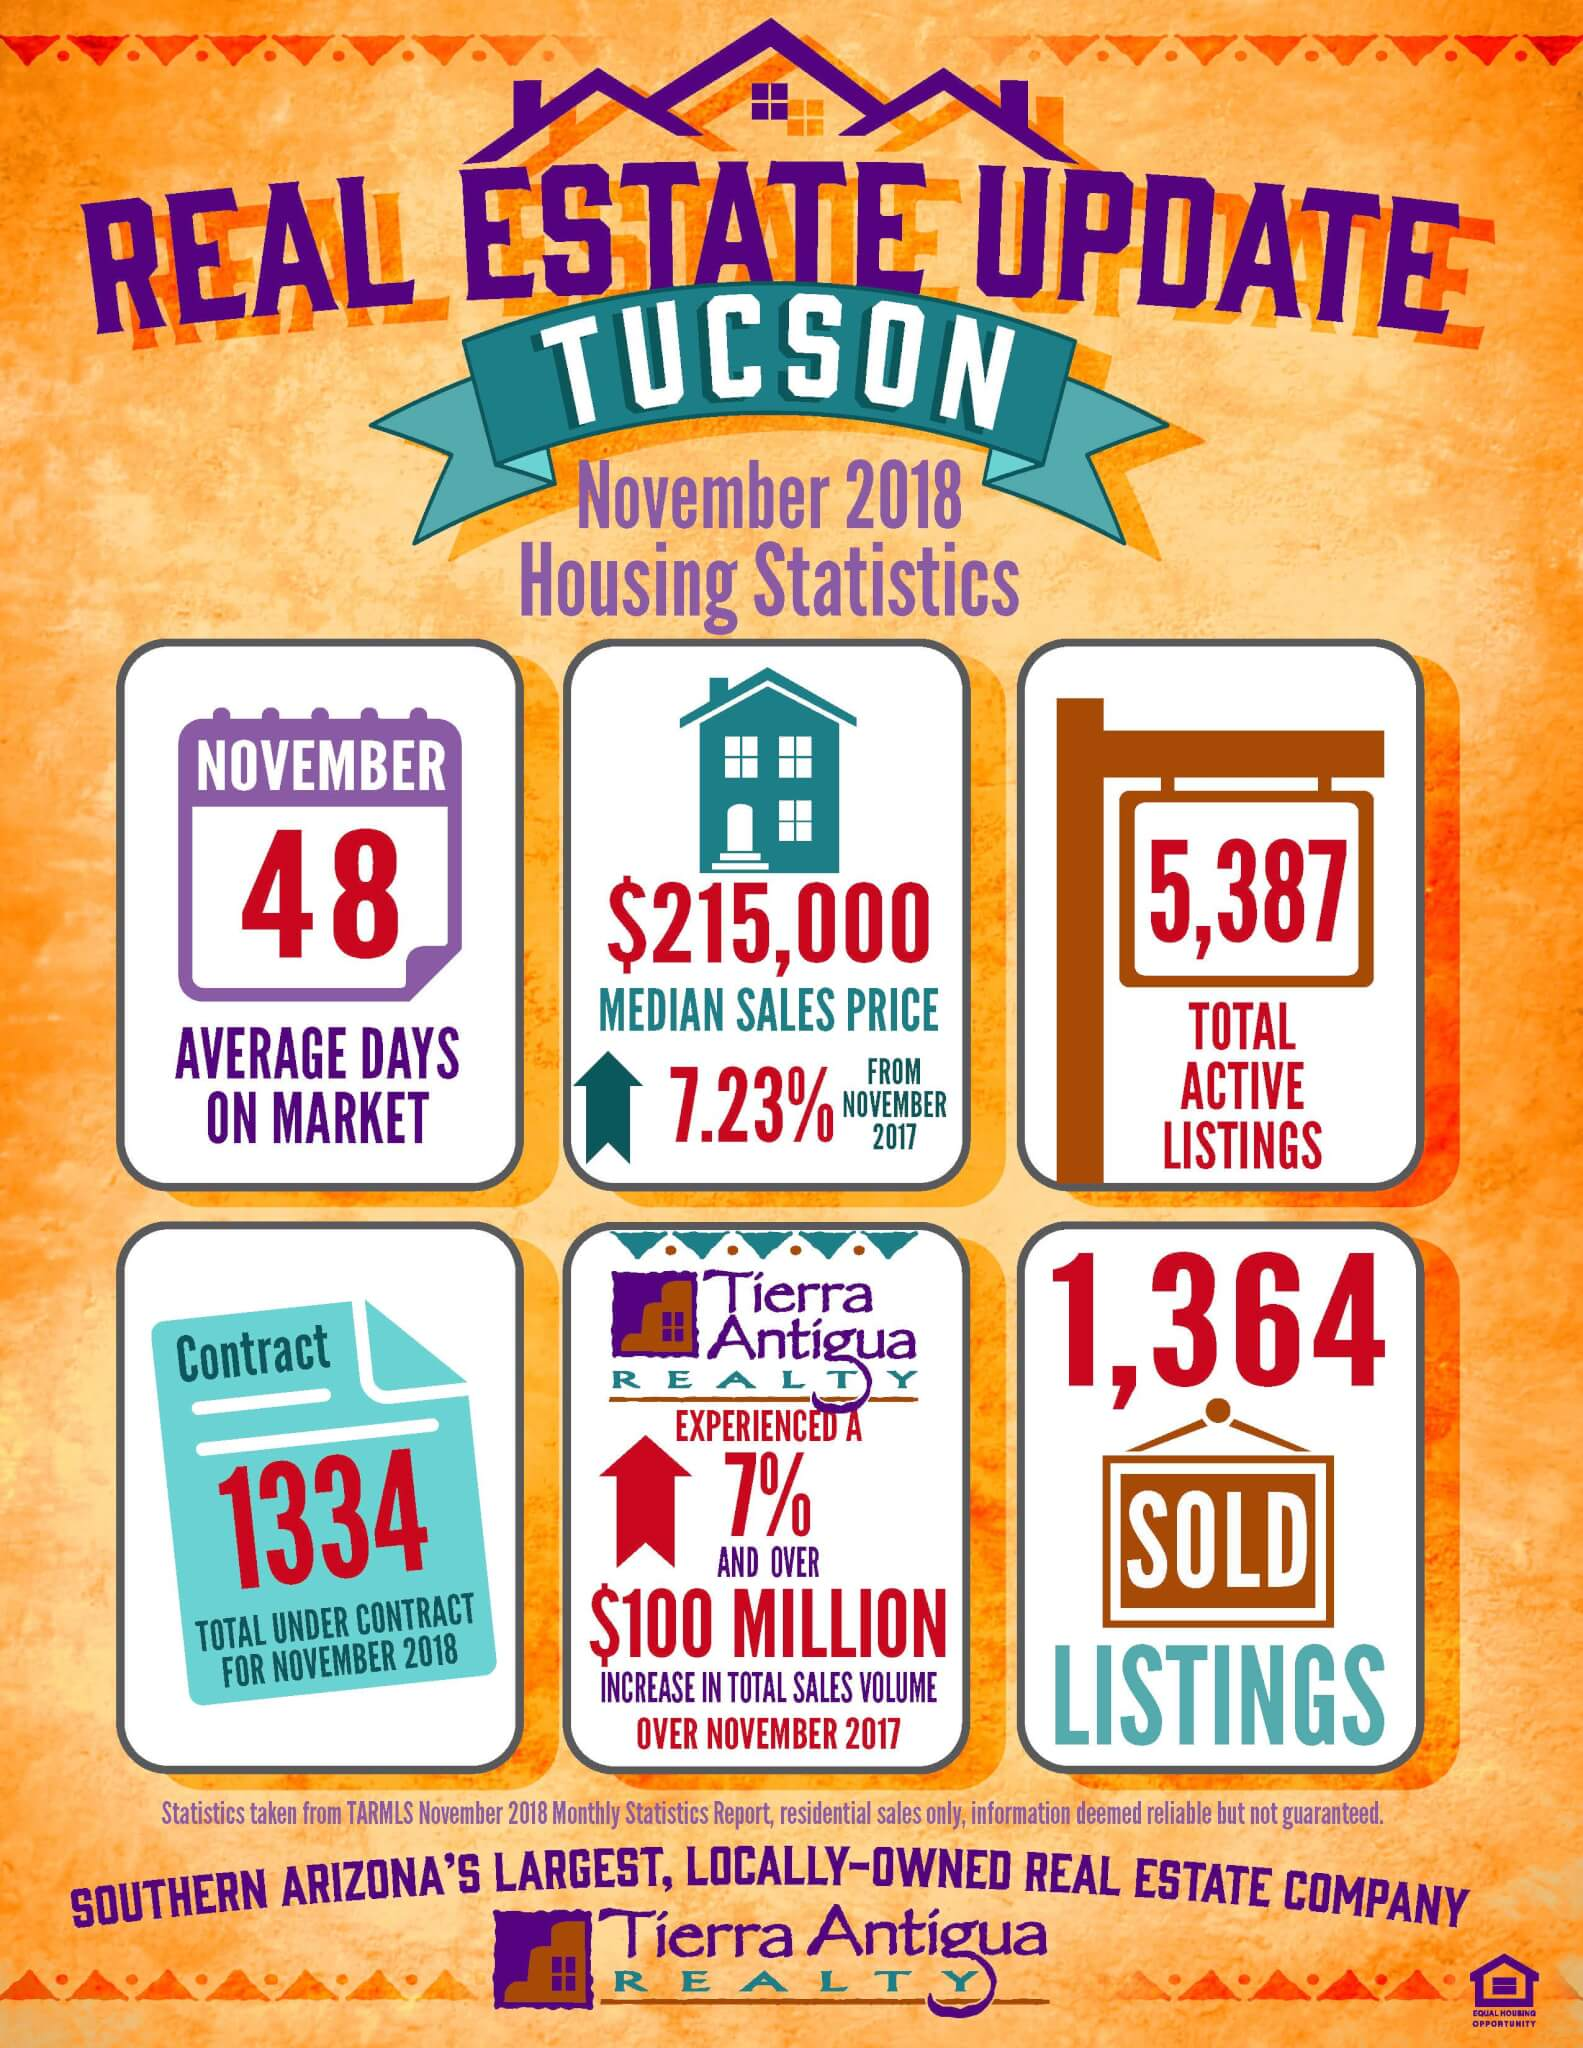 Tucson Real Estate Update November 2018